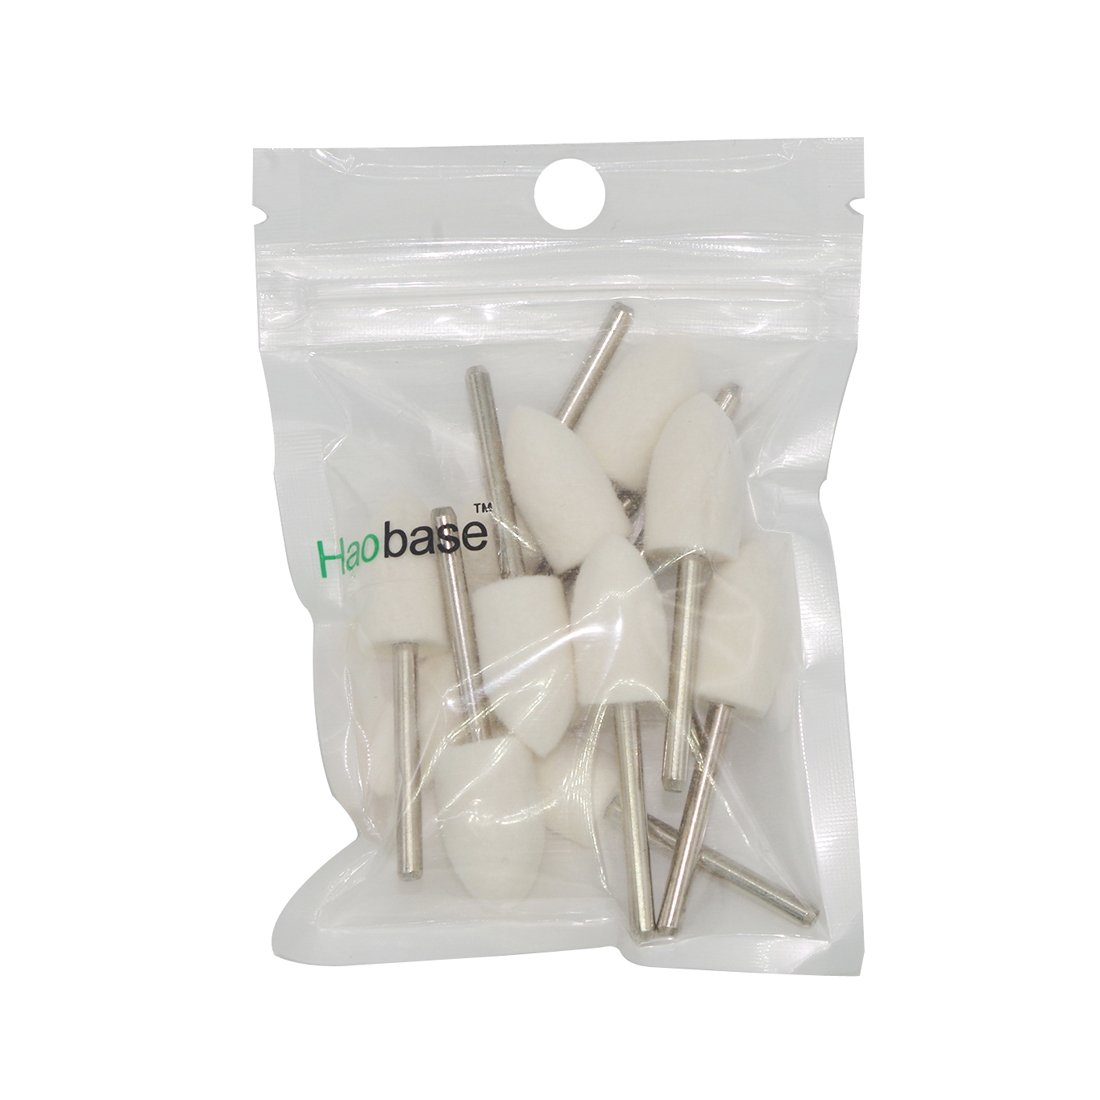 Haobase 12Pcs Mandrel Mounted White Conical Felt Point Polishing Tool